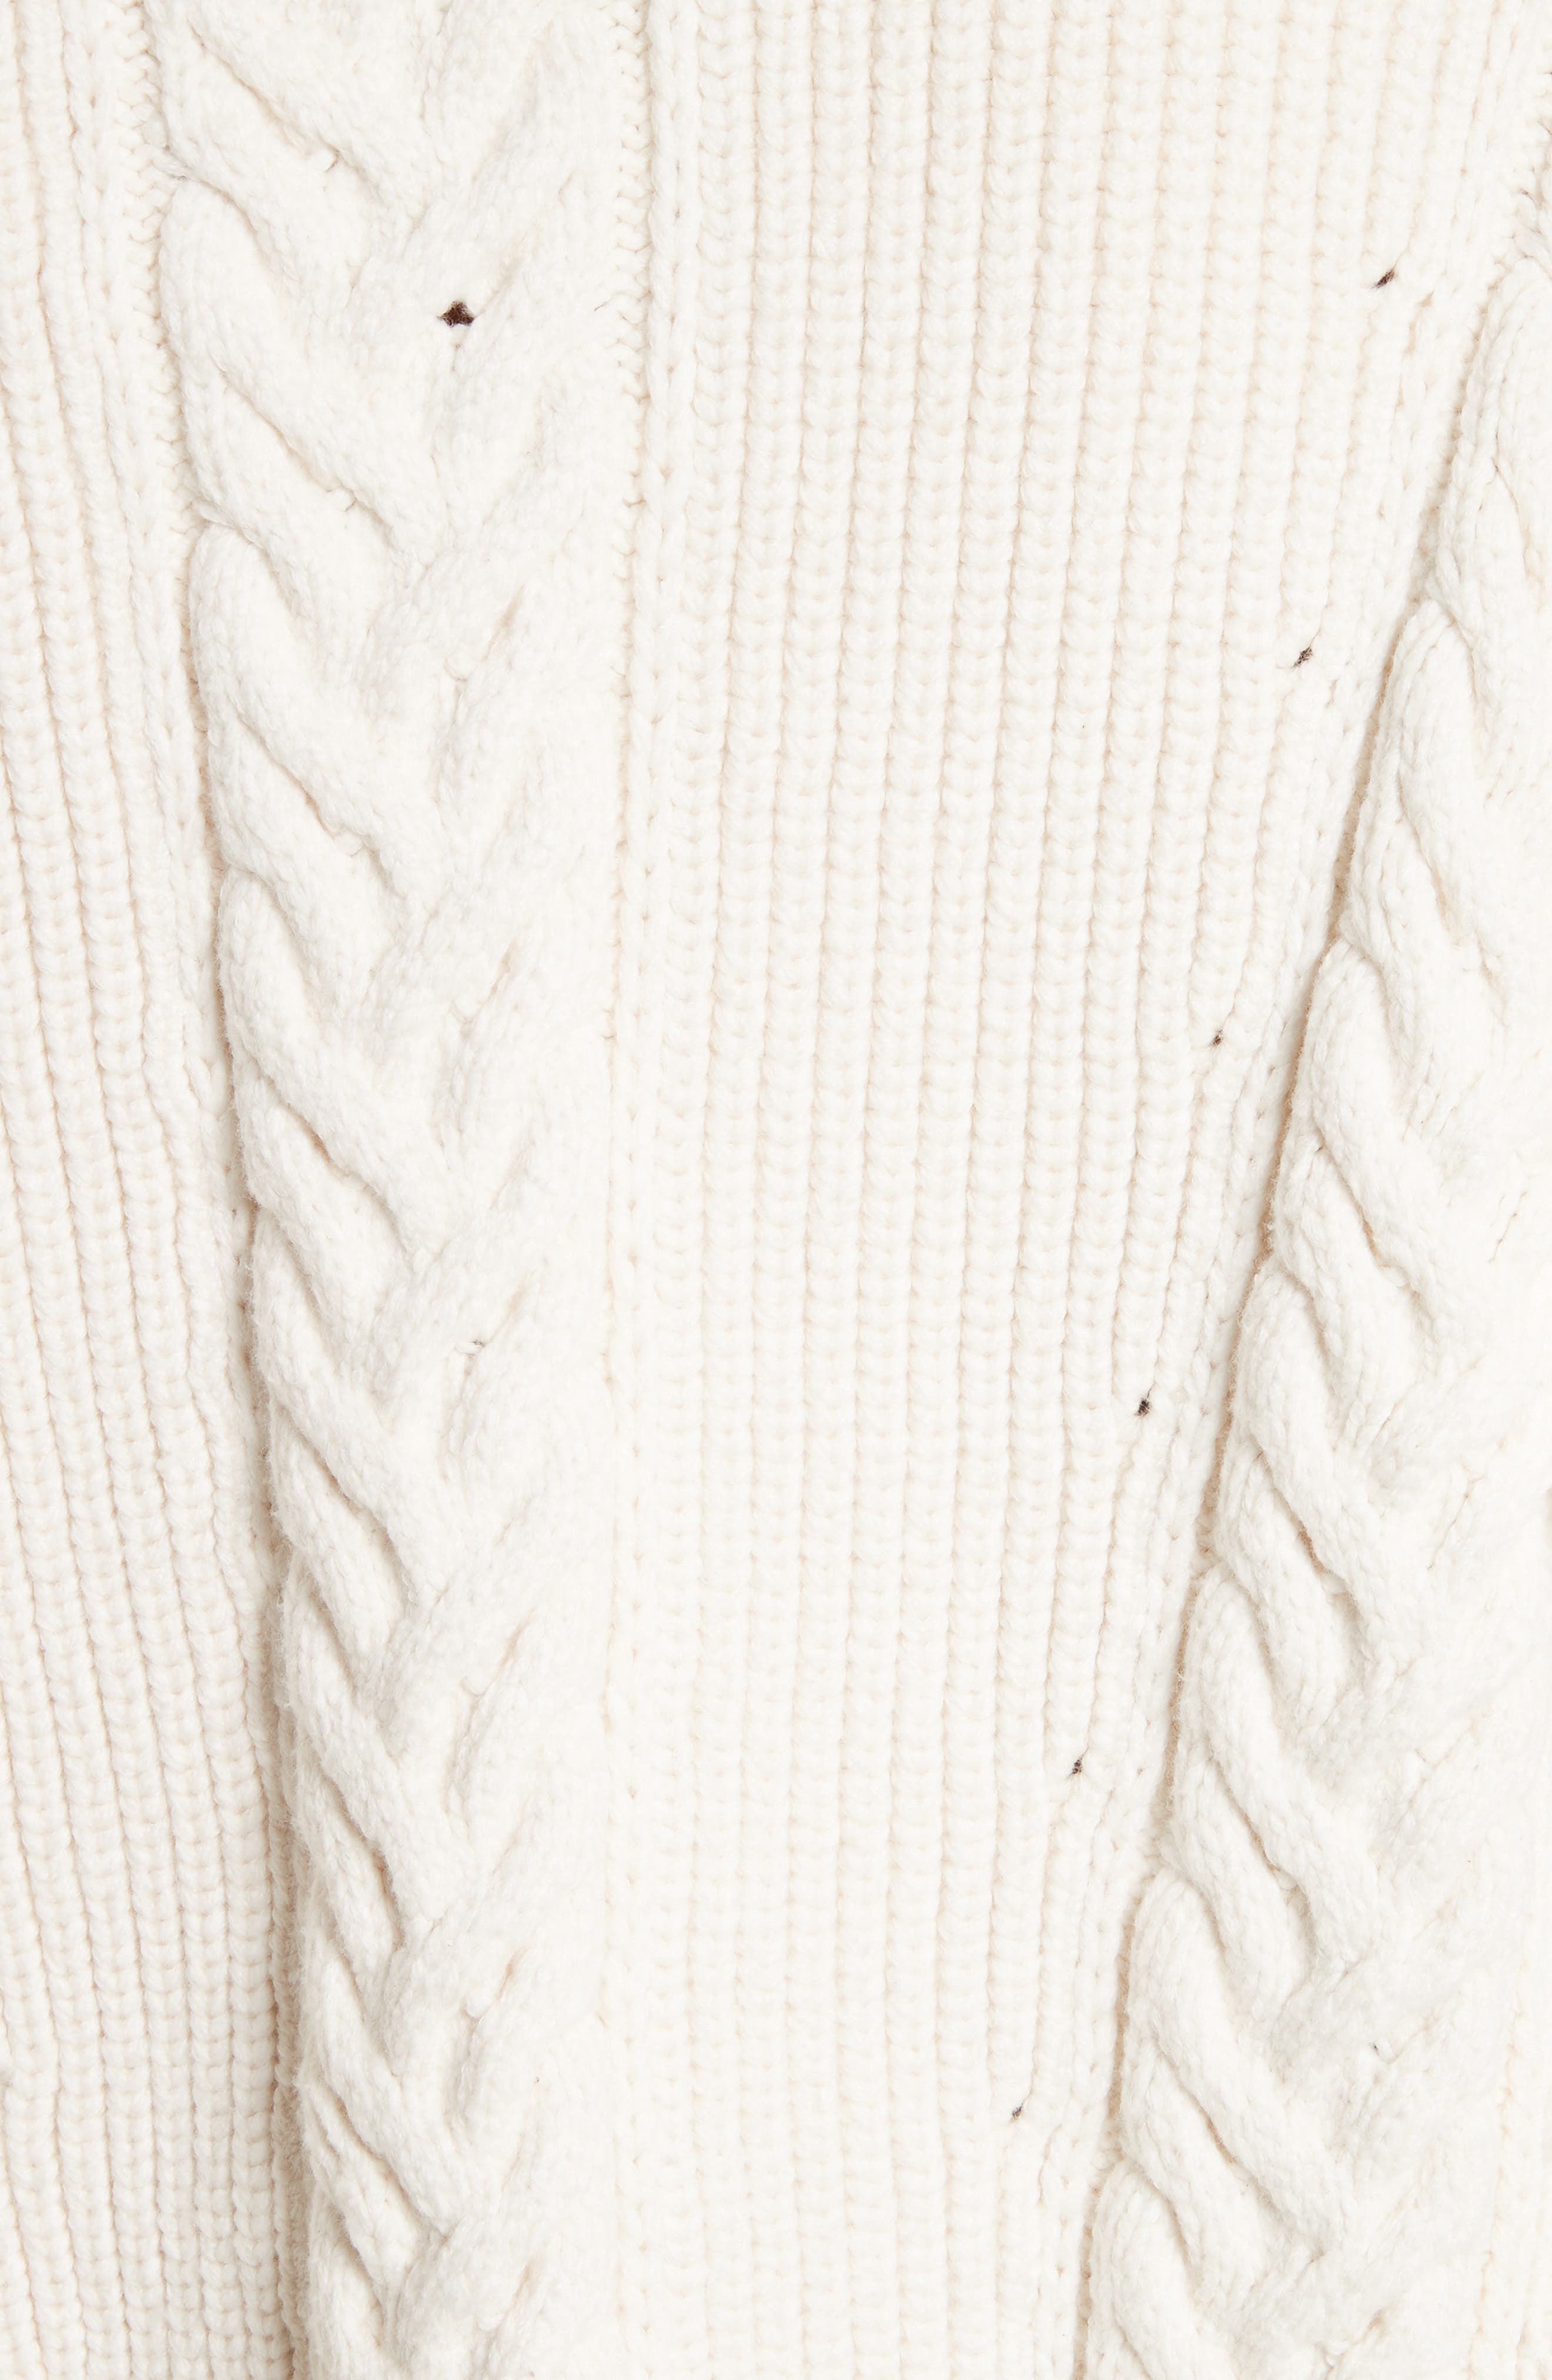 Borbore Fringed Cable Knit Sweater,                             Alternate thumbnail 5, color,                             103